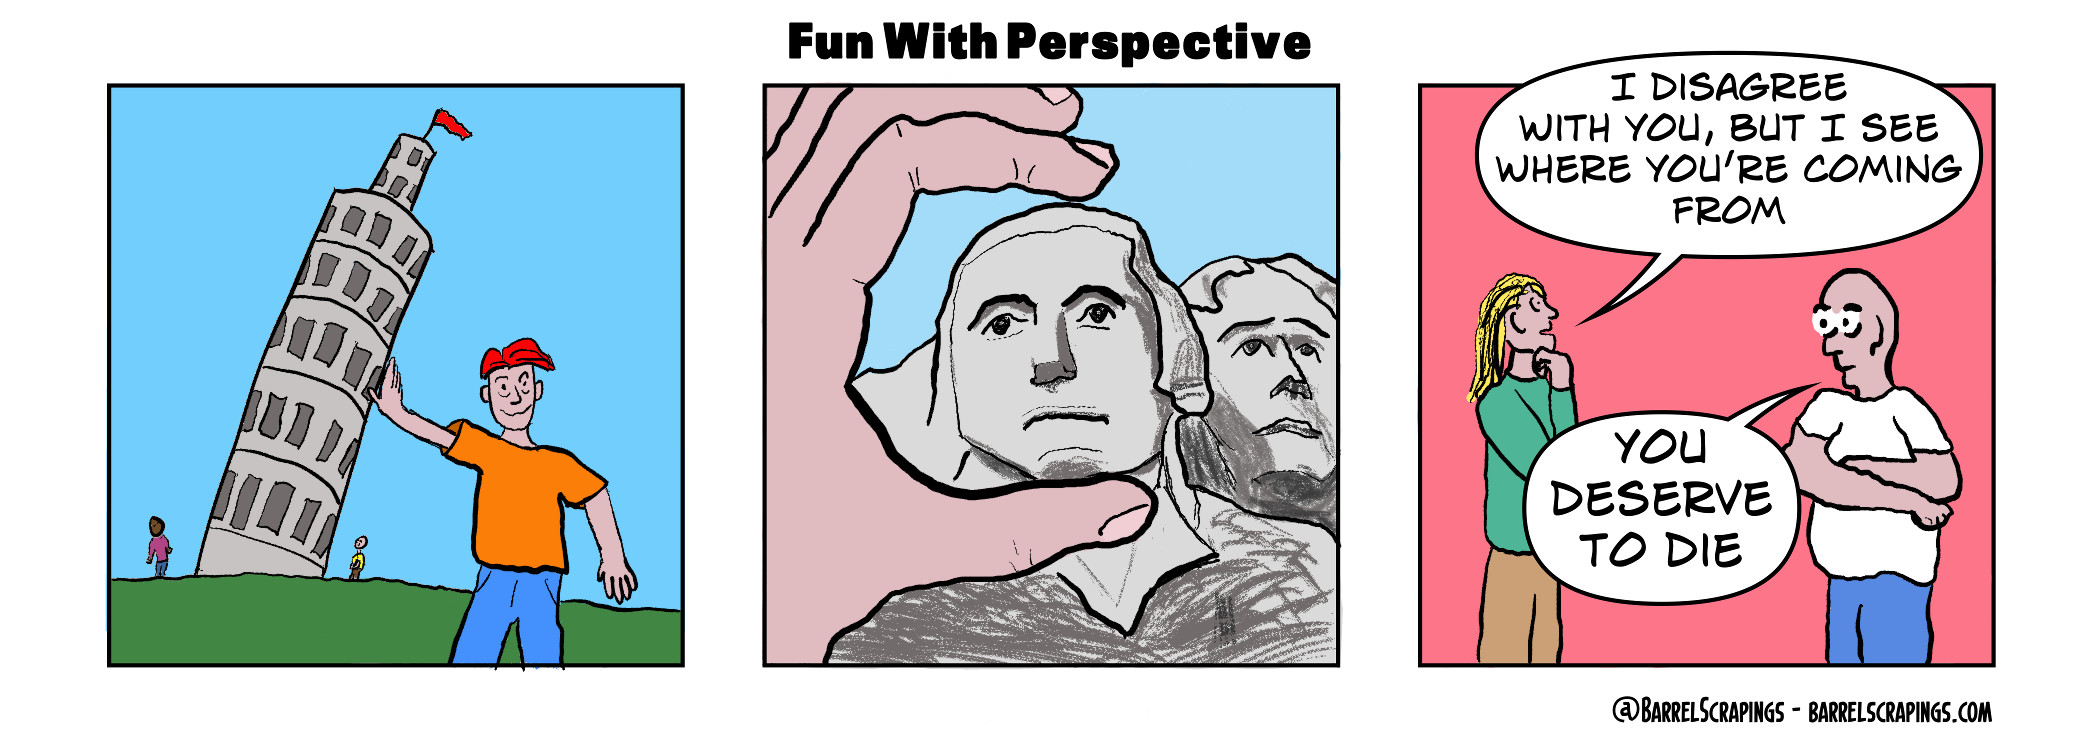 image from Fun With Perspective